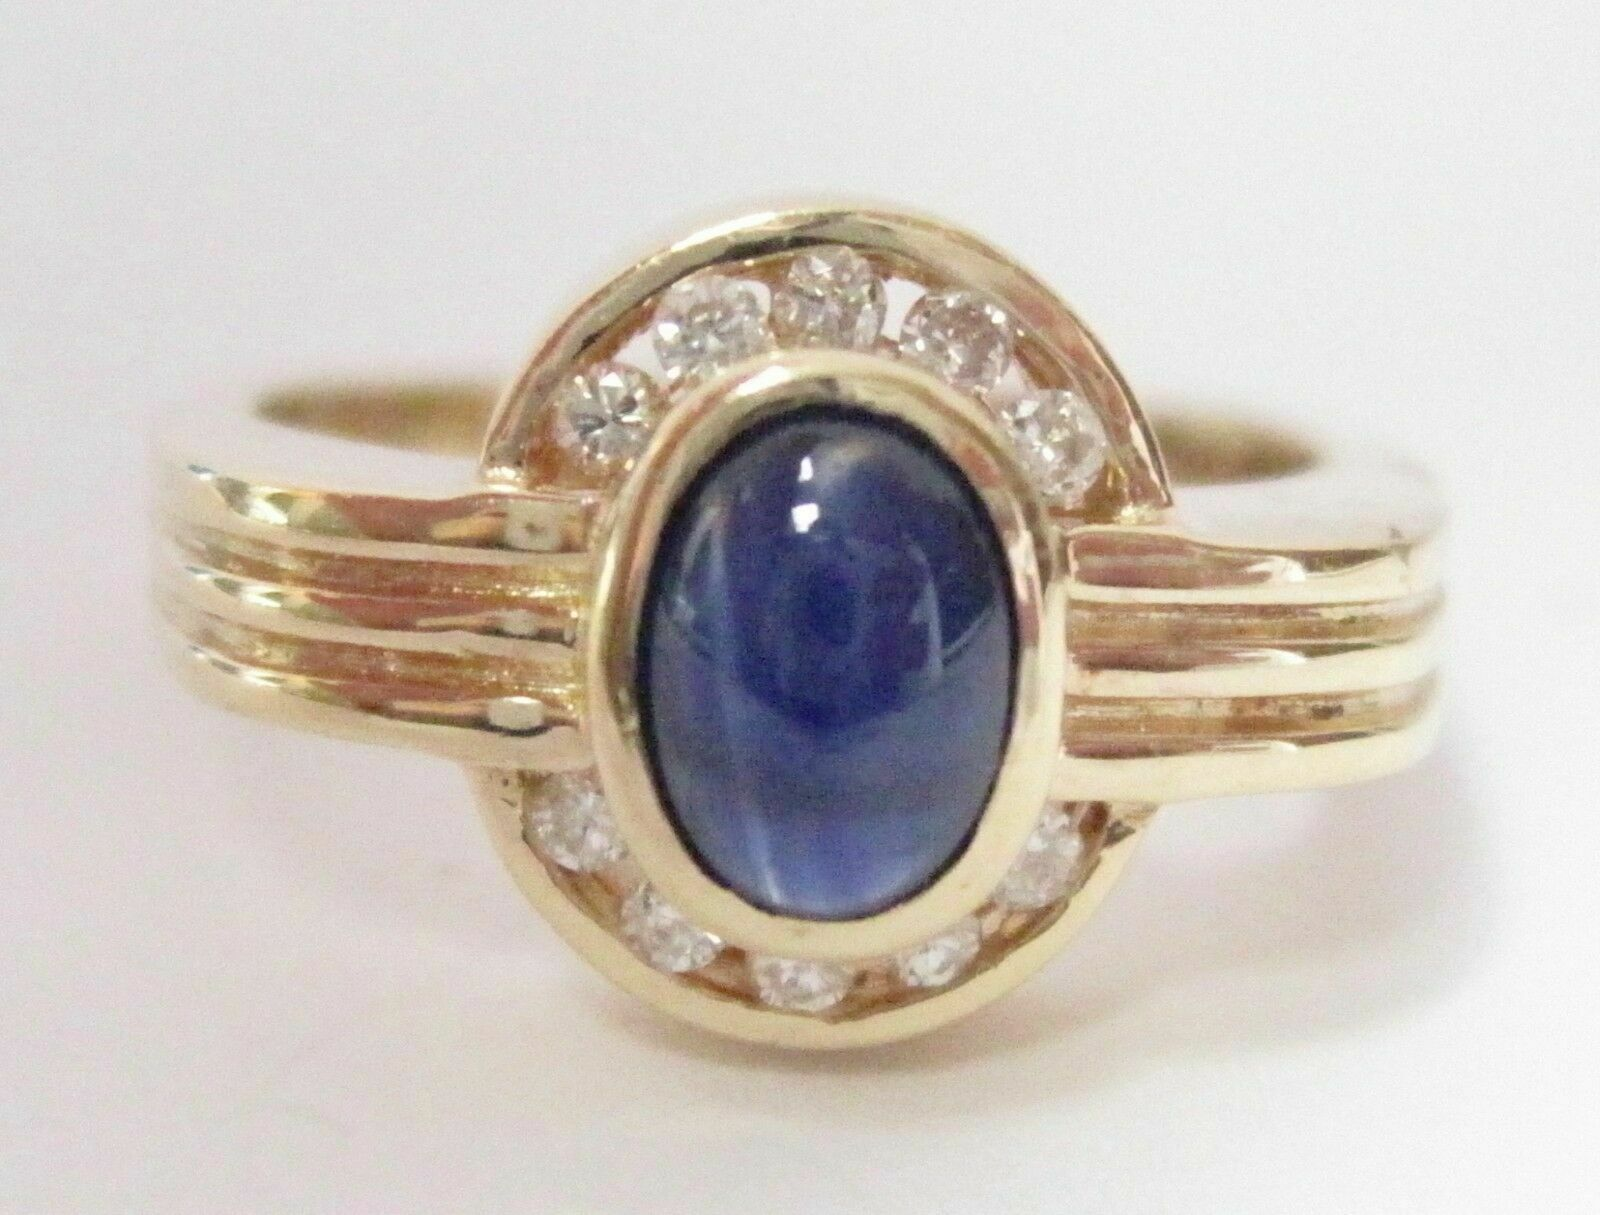 Fine Natural Oval Cut Blue Sapphire Diamond Ring Size 6 14kt WG